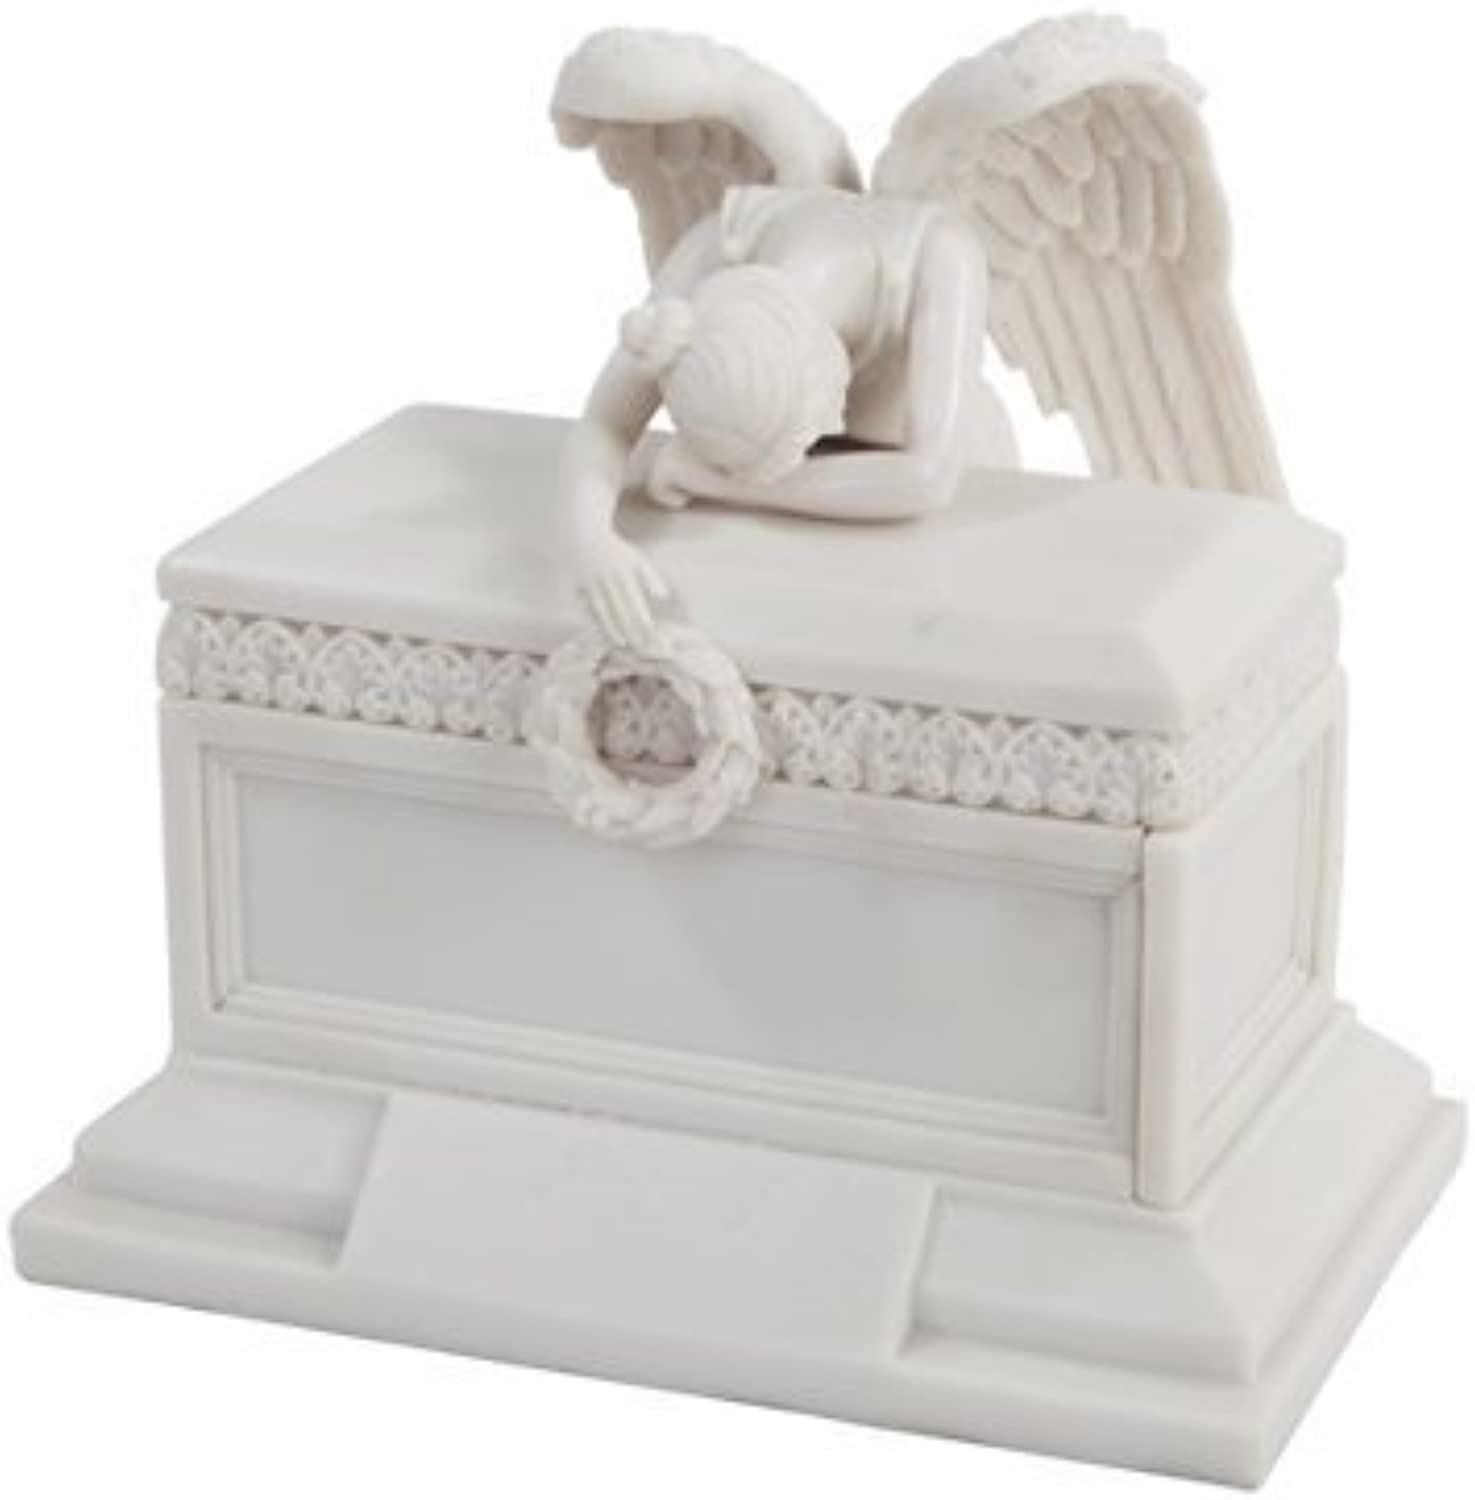 6 Inch Angel of Bereavement Keepsake Urn Religious Statue Figurine